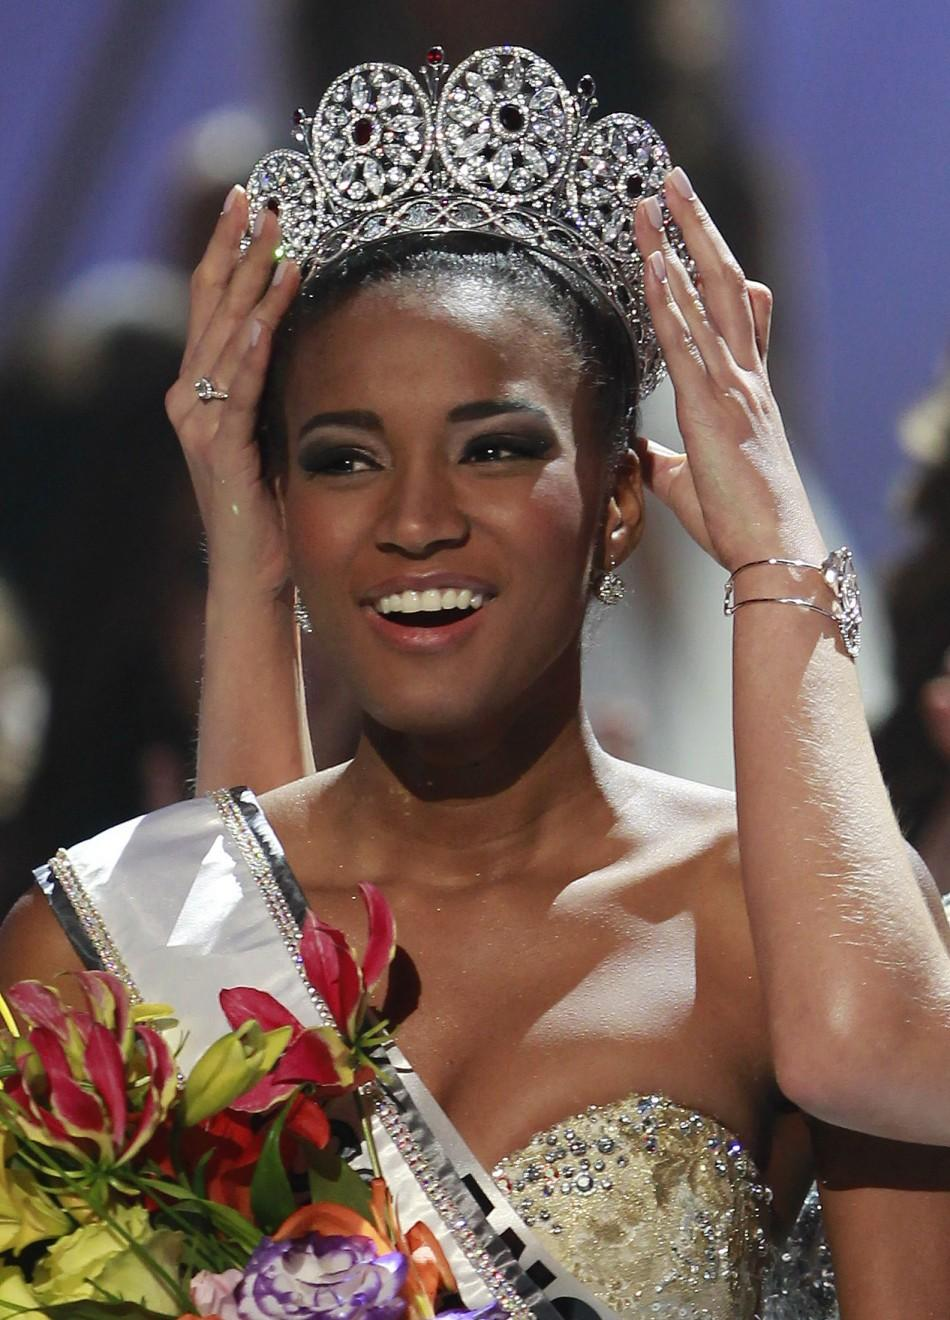 Miss Angola Leila Lopes is crowned by Miss Universe 2010 Ximena Navarrete of Mexico after being named Miss Universe 2011 during the Miss Universe pageant in Sao Paulo